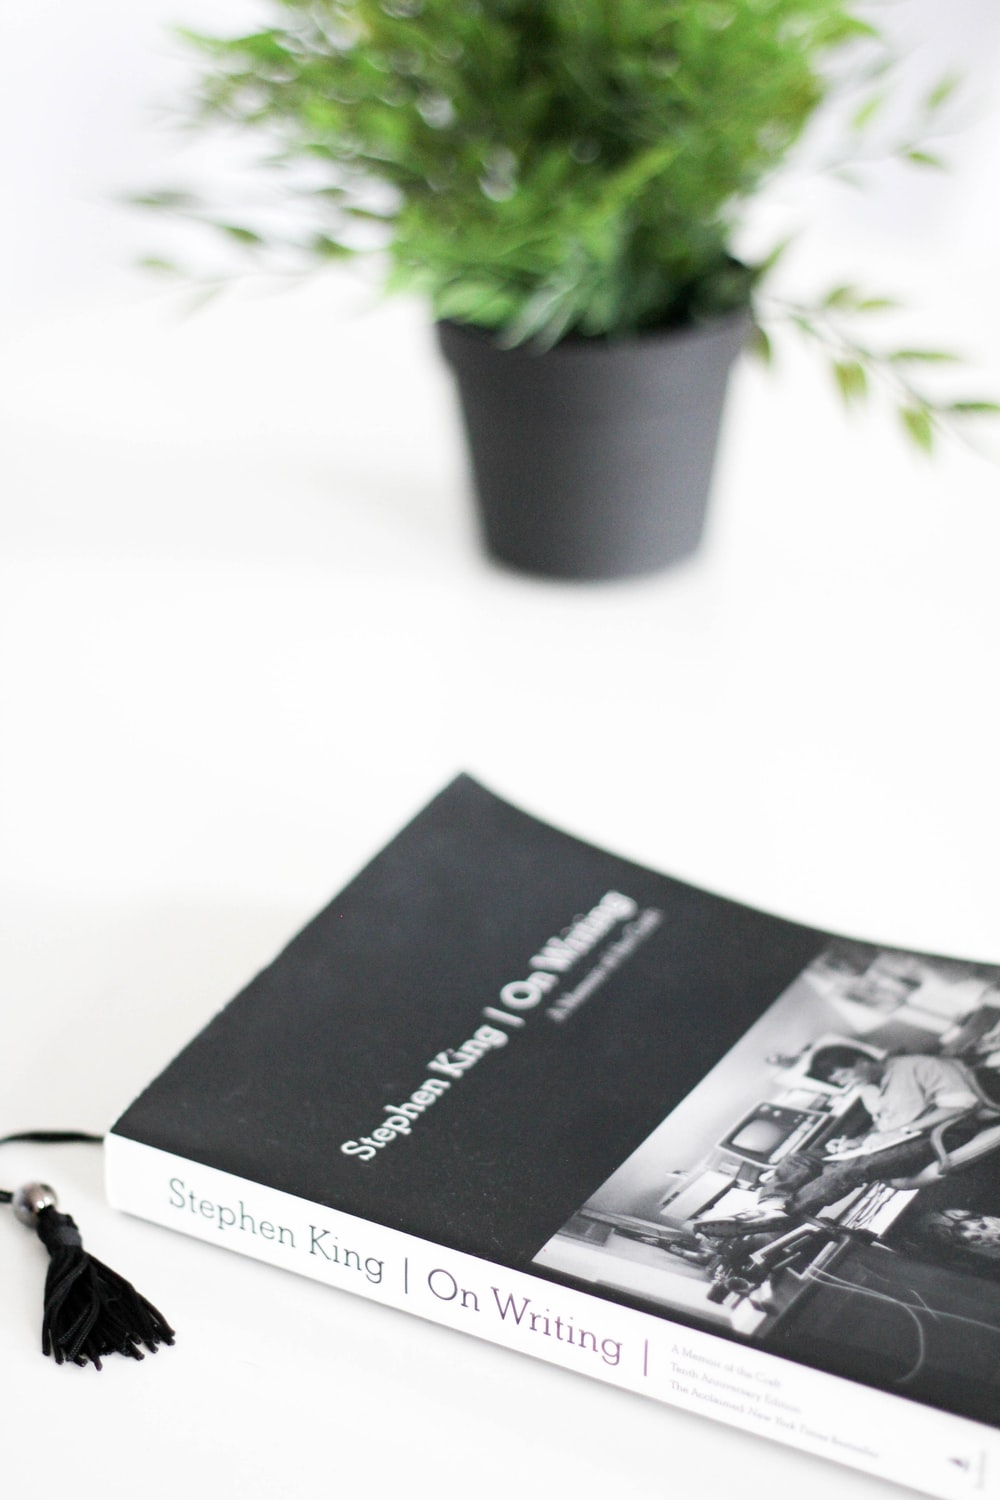 black and white book beside green potted plant